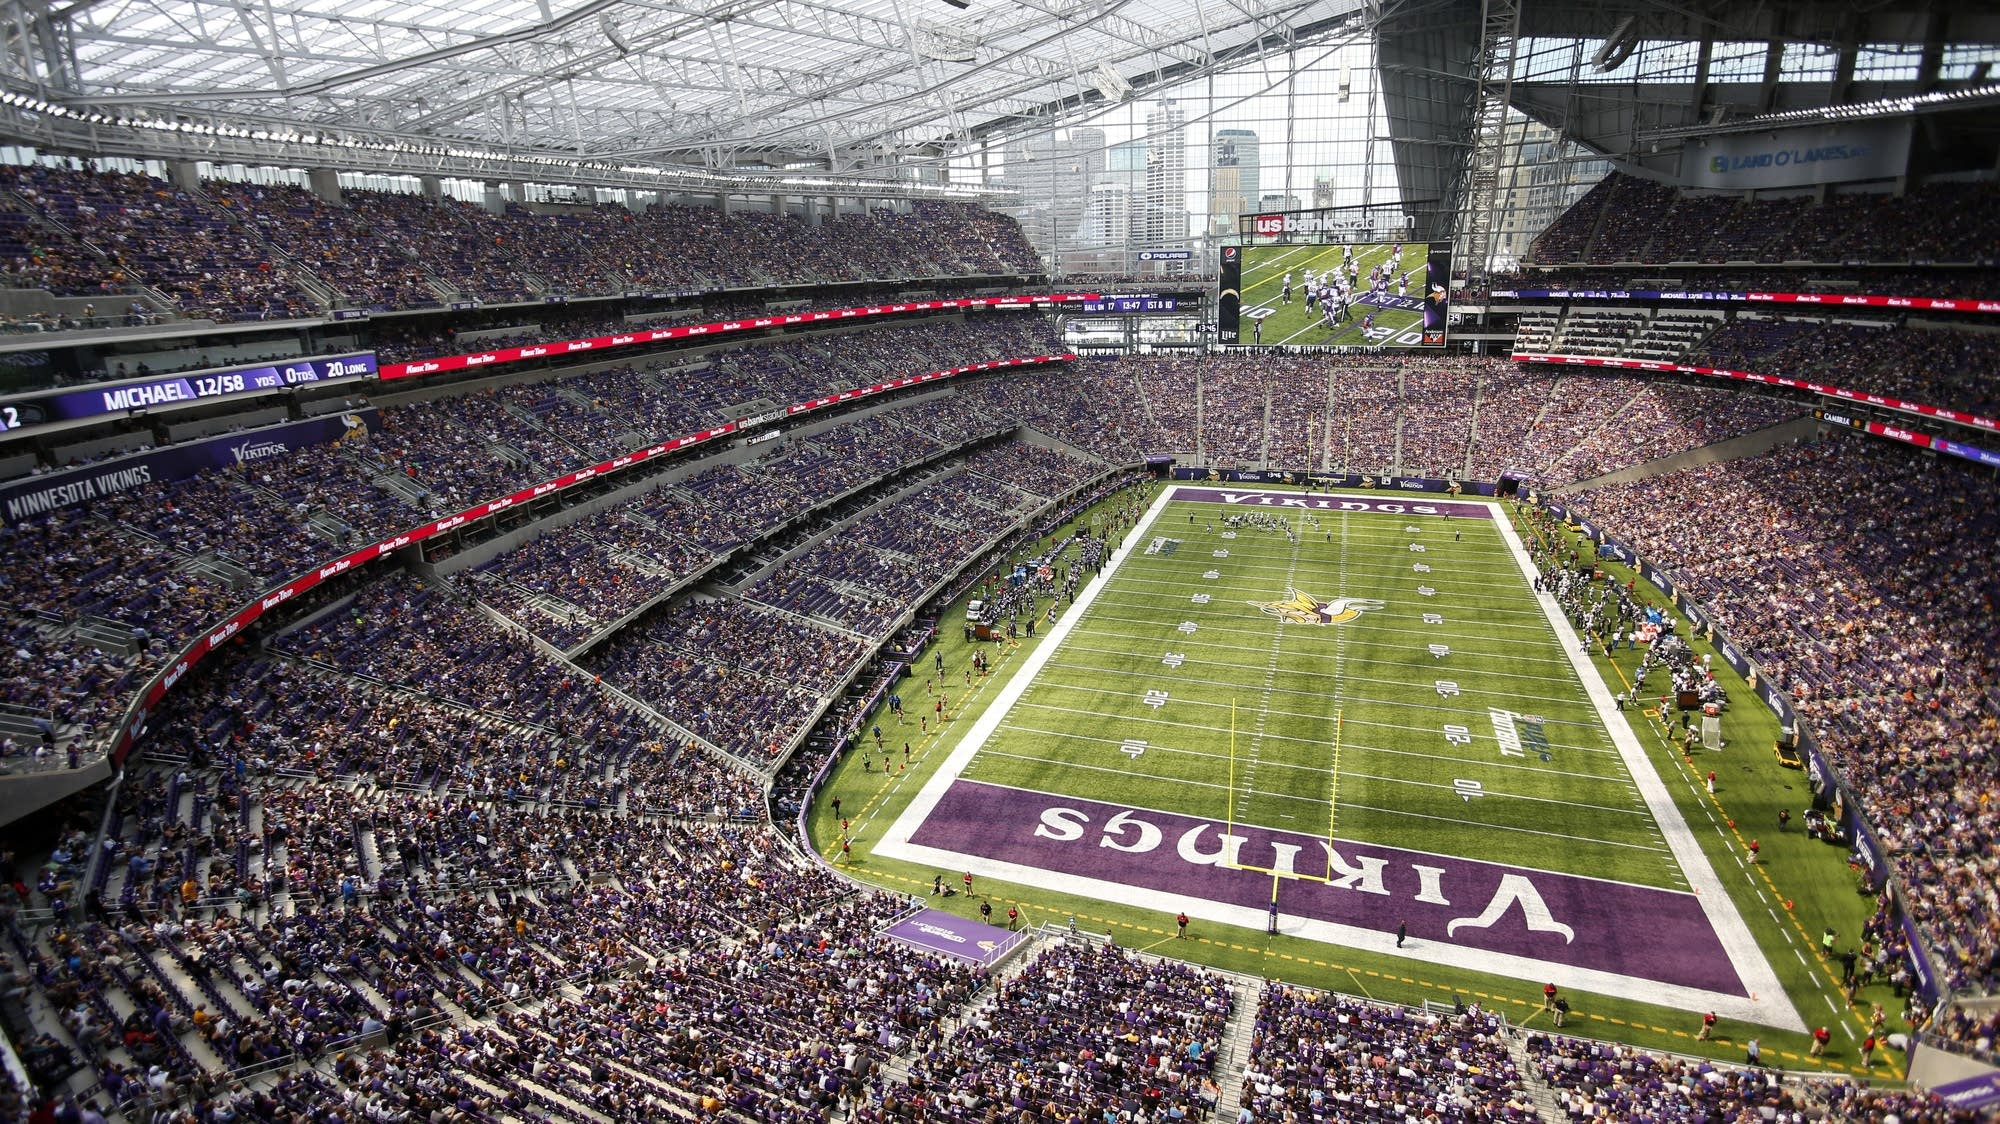 Exterior: Auditor: Agency Breached Ethics In Using Vikings Stadium